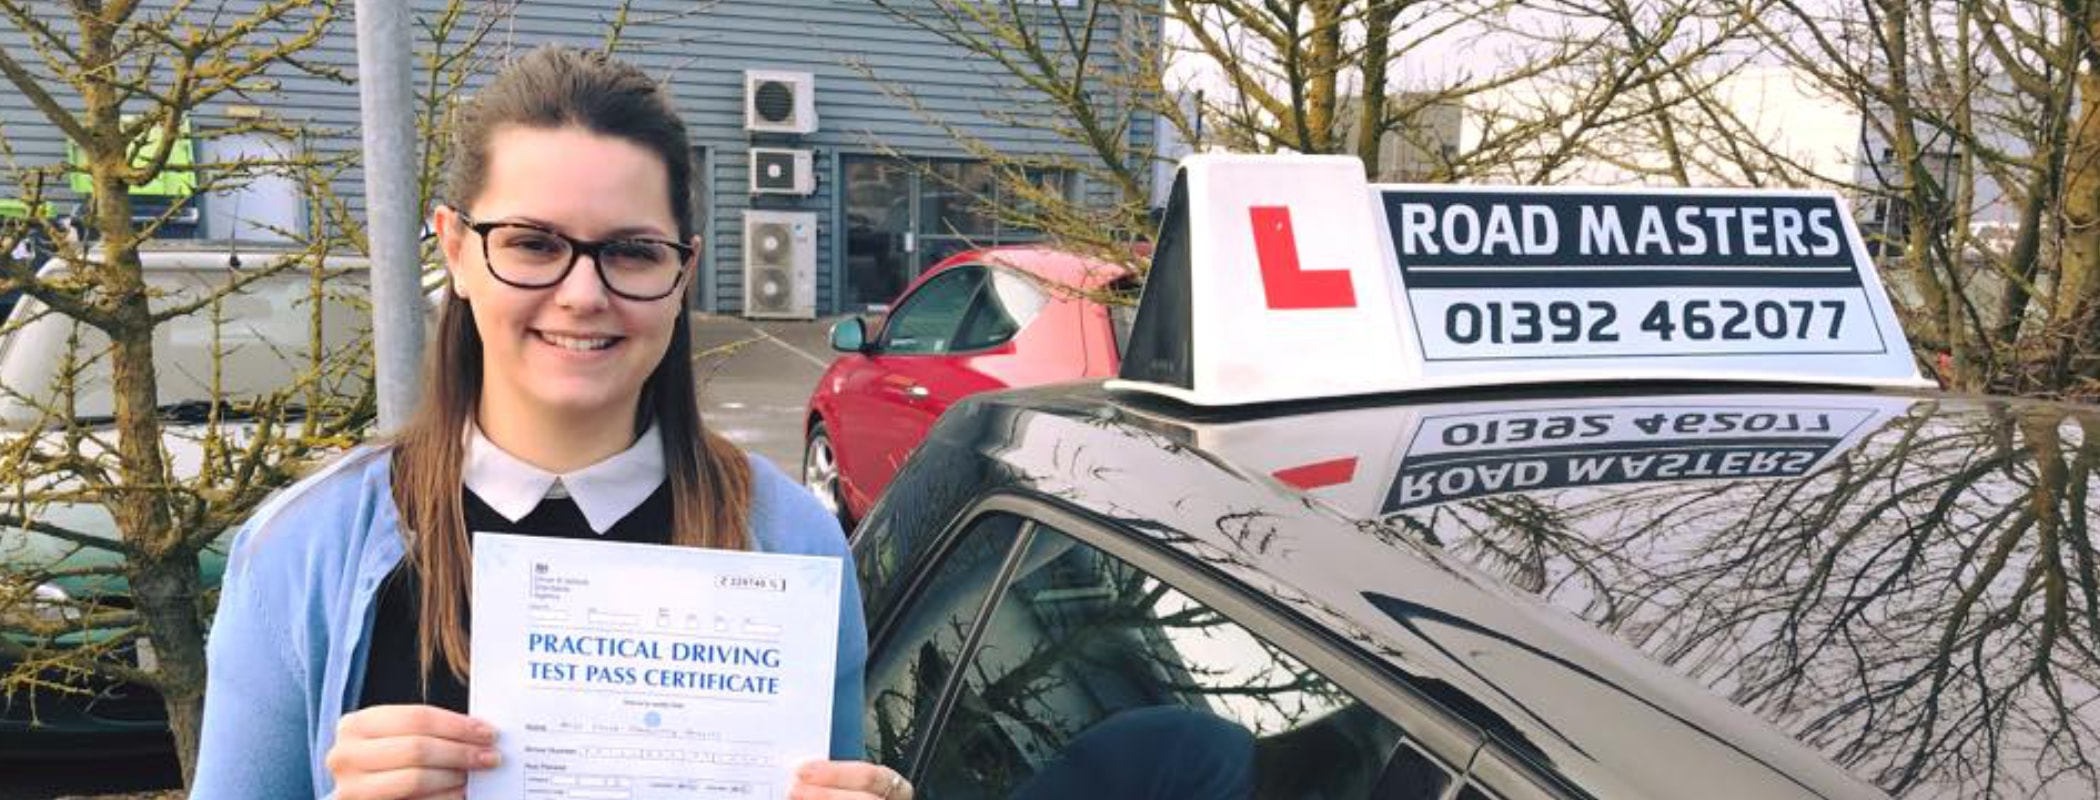 Driving lessons Exeter from £28.50 /hr*